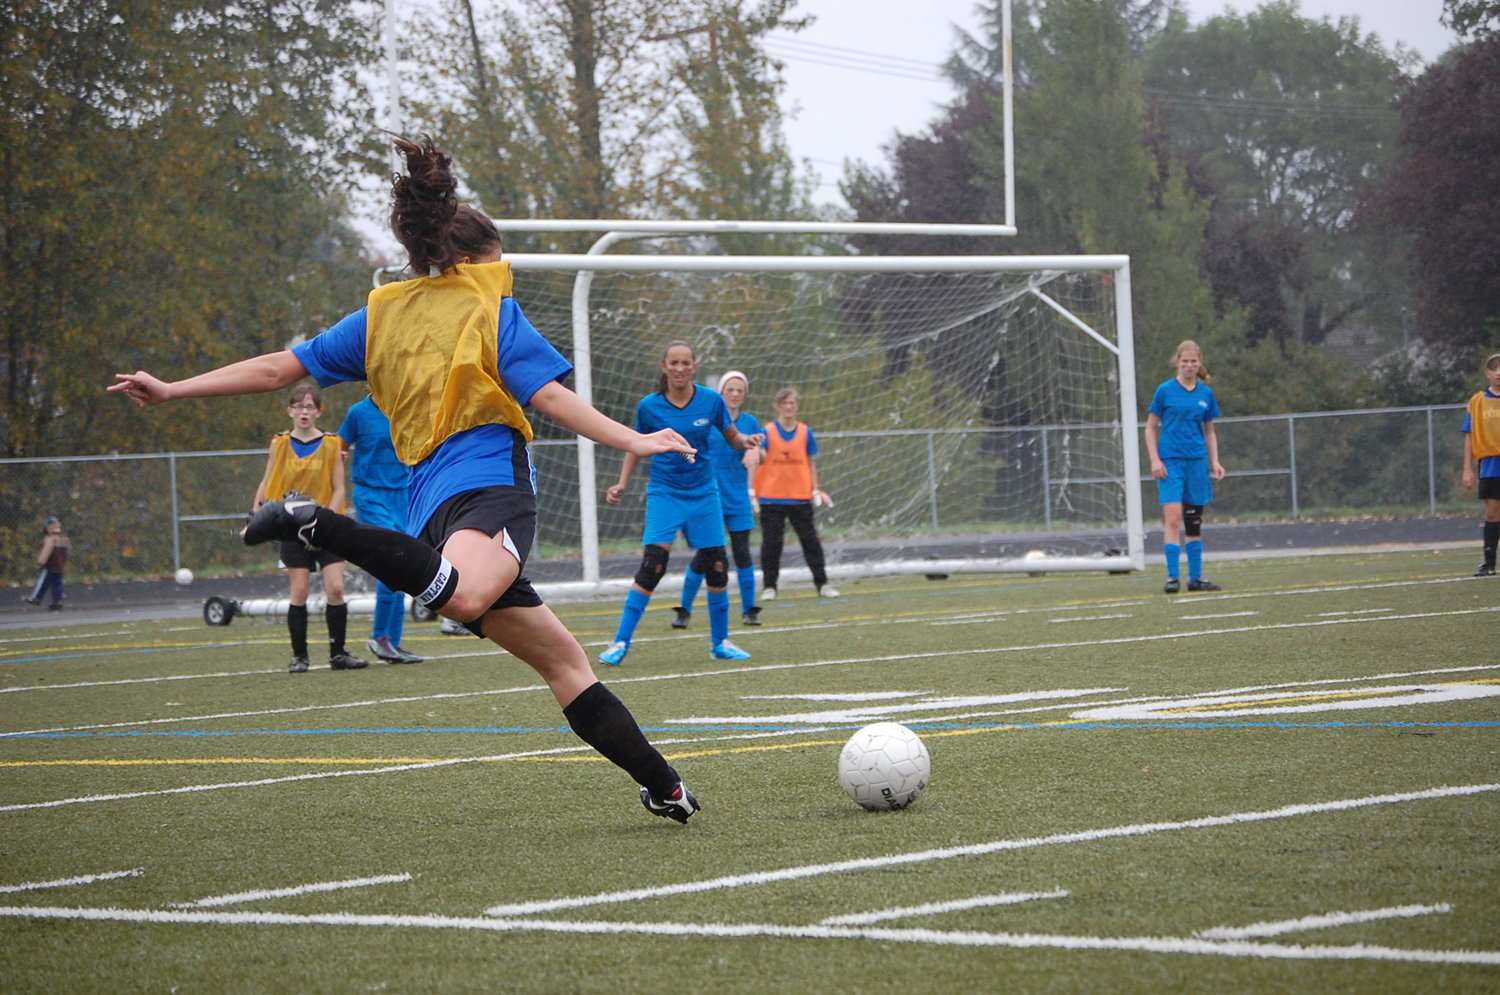 181ad1fa0 WHY PLAYING MULTI-SPORTS IS IMPORTANT